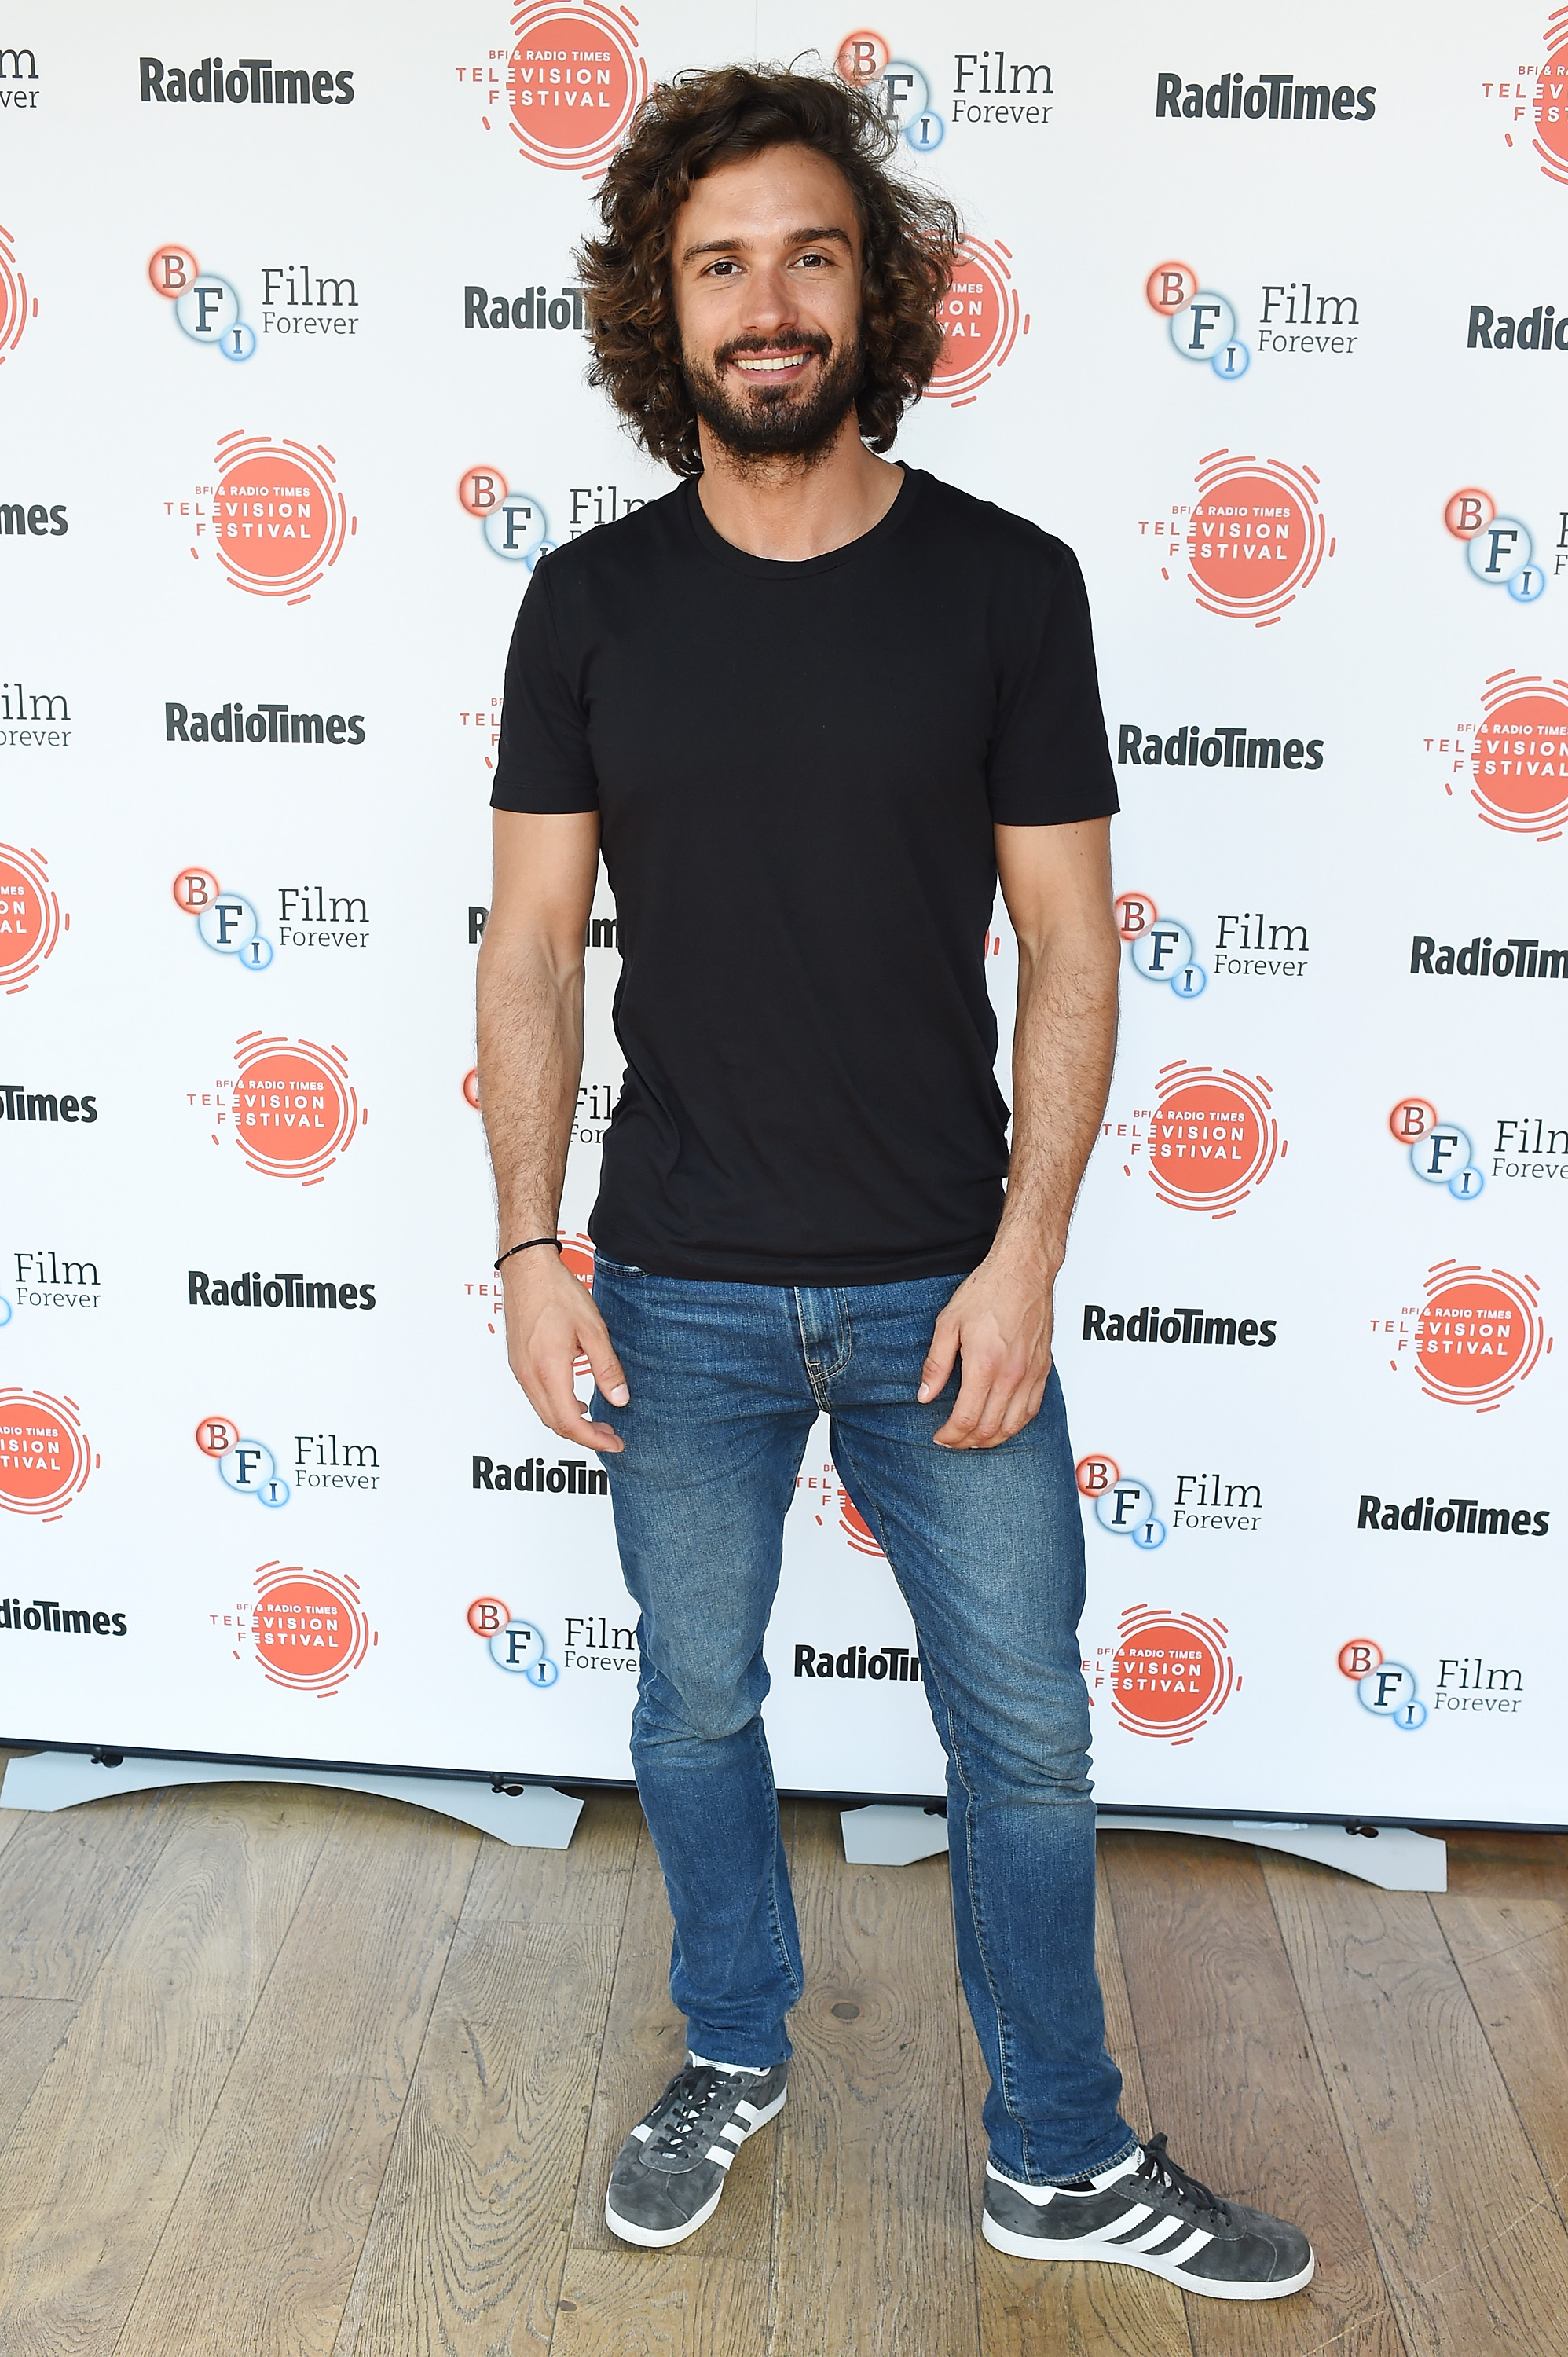 LONDON, ENGLAND - APRIL 08: Joe Wicks attends the BFI & Radio Times TV Festival at BFI Southbank on April 8, 2017 in London, England. (Photo by Tabatha Fireman/Getty Images) Getty, RT